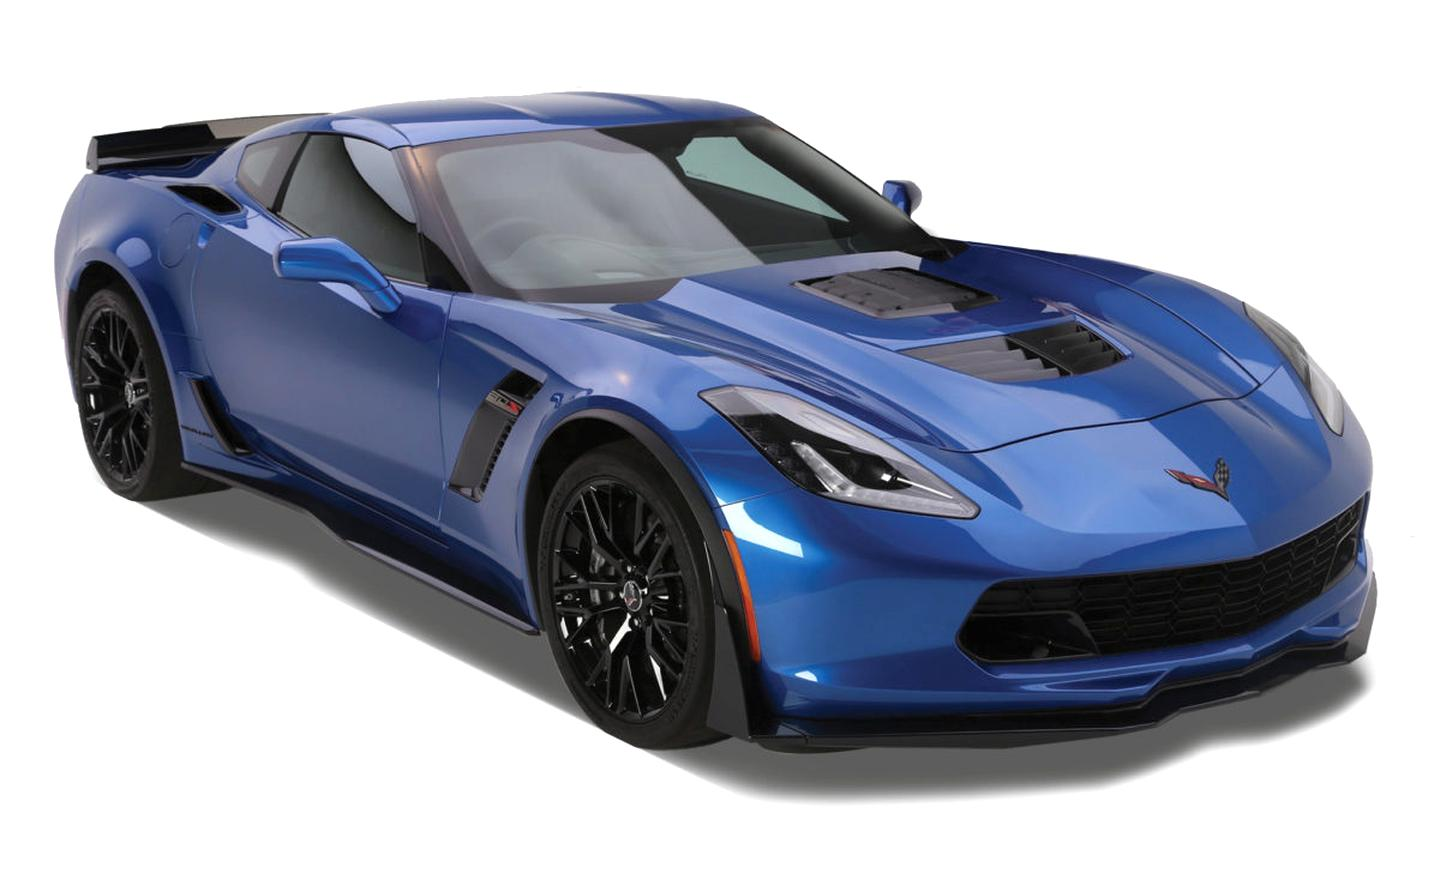 Callaway Corvette For Sale >> Callaway Corvette For Sale Only 2 Left At 65